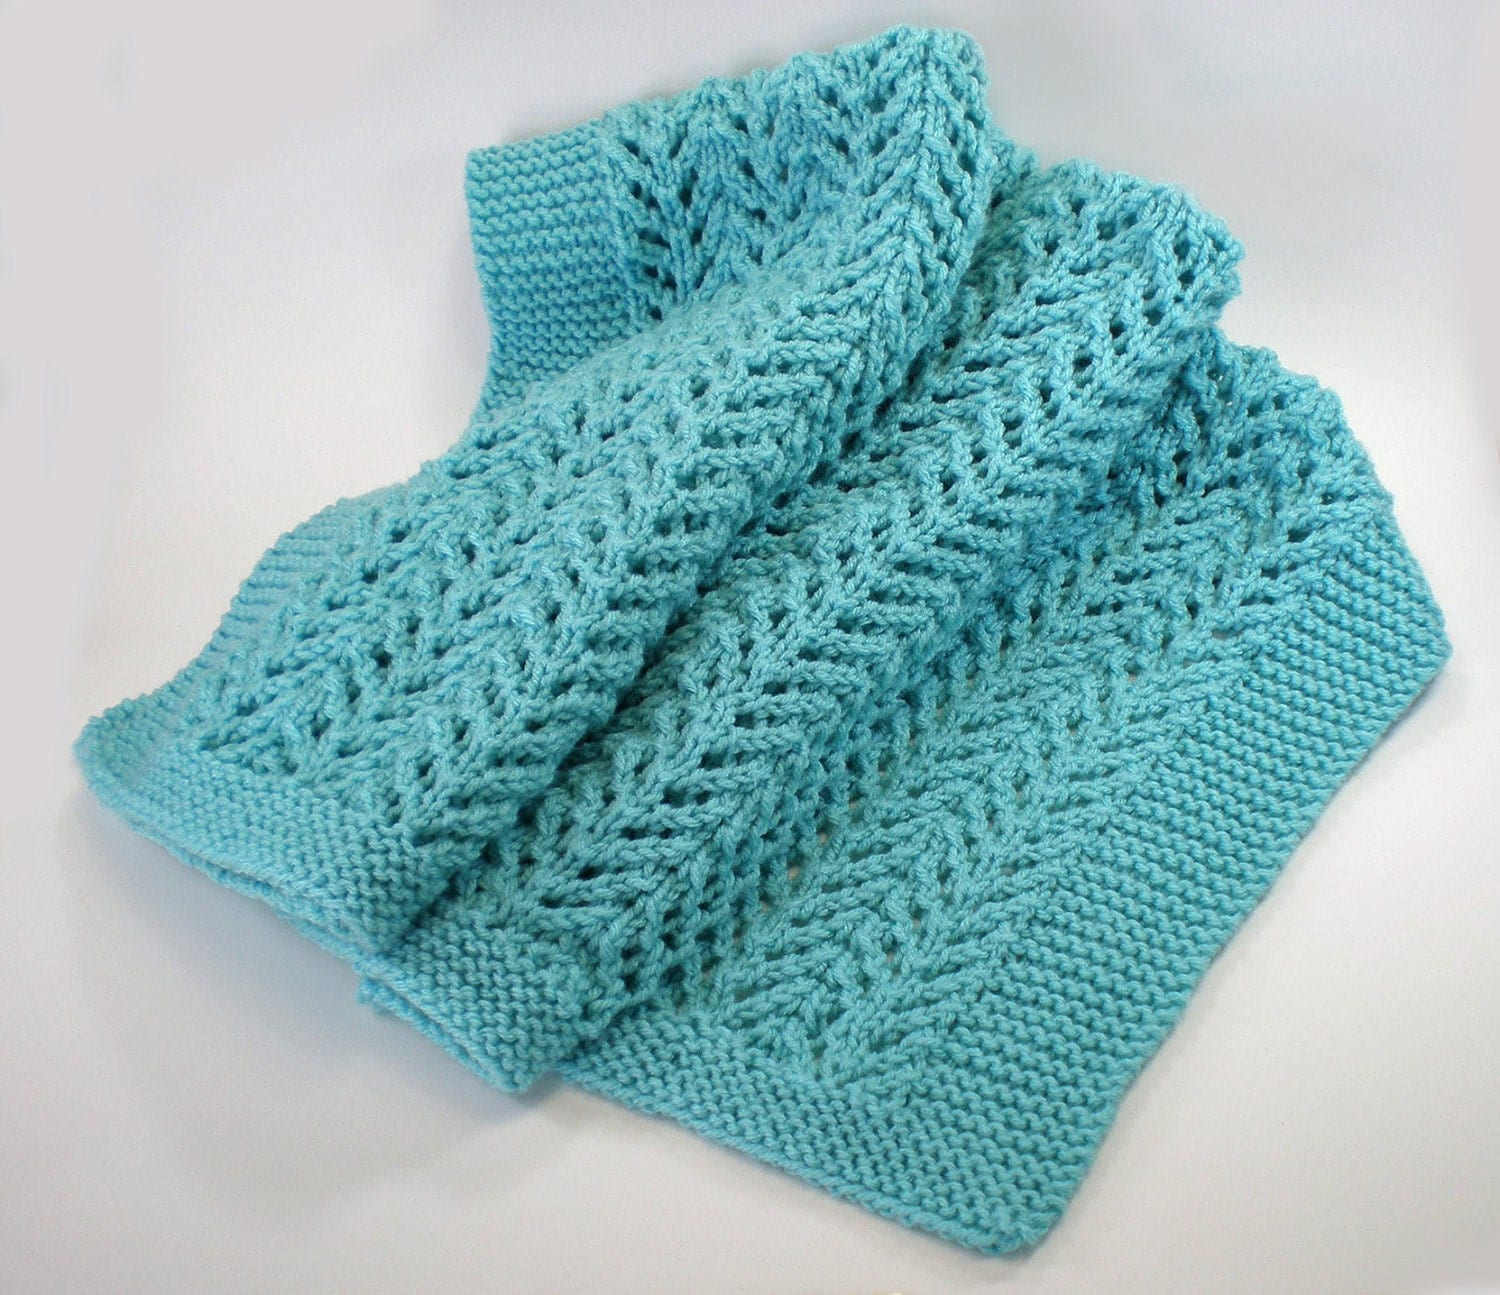 Quick And Easy Knitted Baby Blanket Patterns : Heirloom knit baby blanket easy care machine washable.